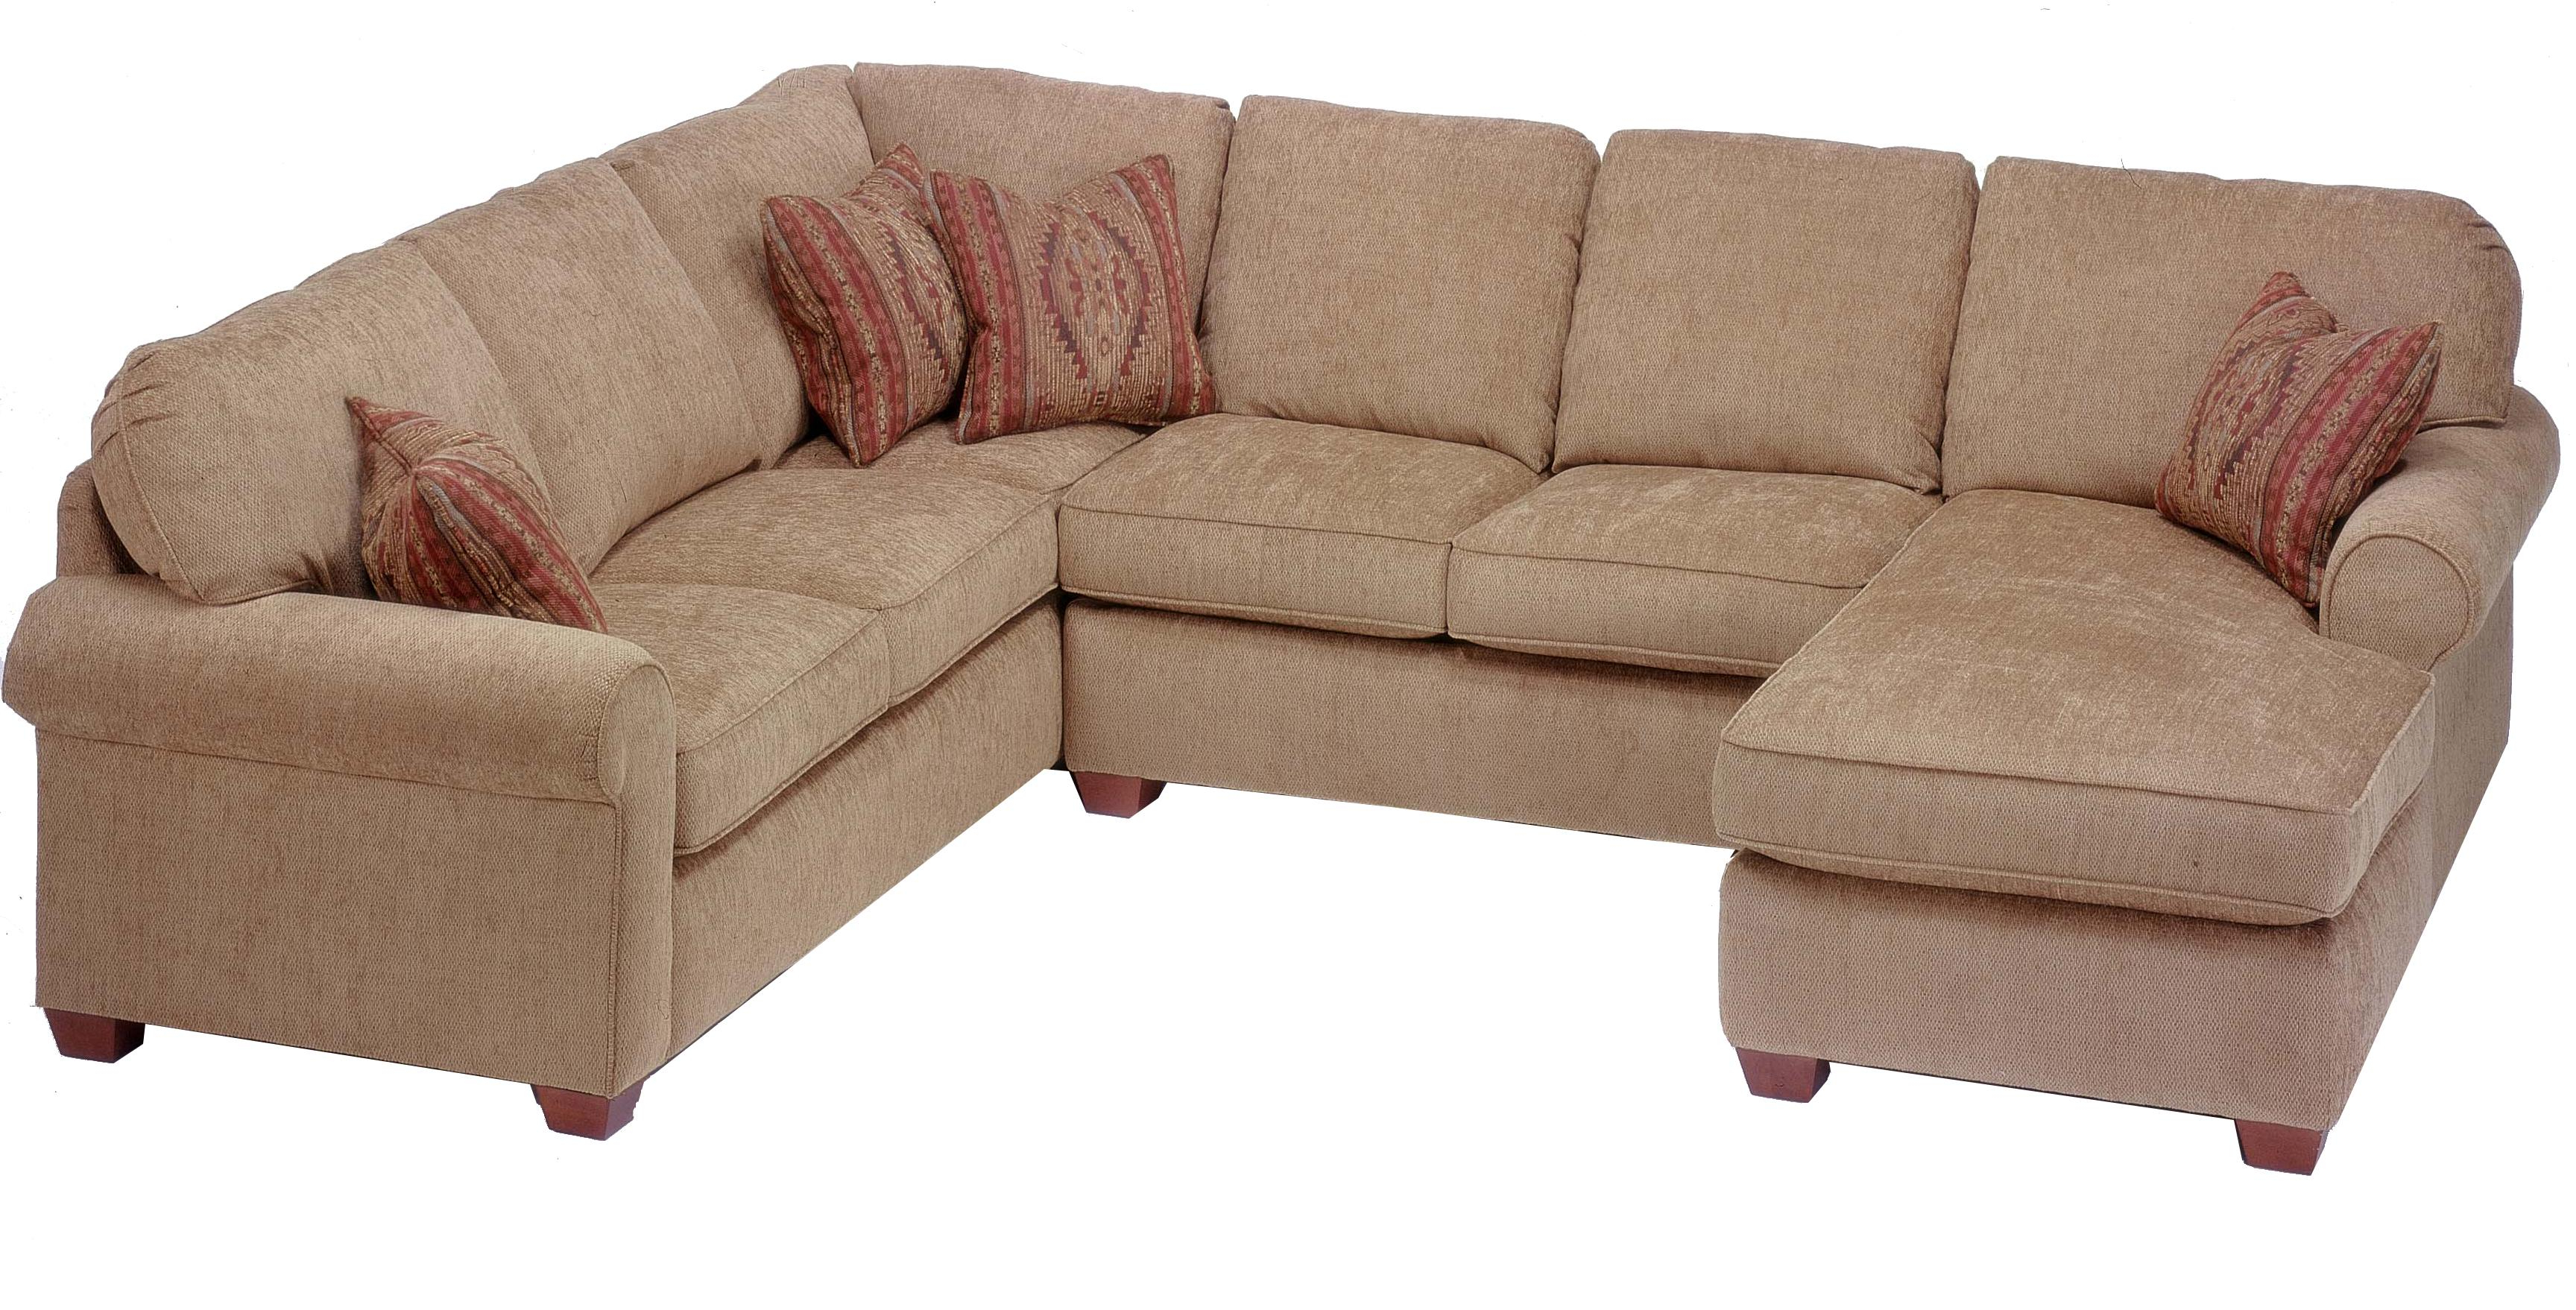 Newest Meyer 3 Piece Sectionals With Laf Chaise Pertaining To Flexsteel Thornton 3 Piece Sectional With Chaise – Ahfa – Sofa (View 7 of 20)